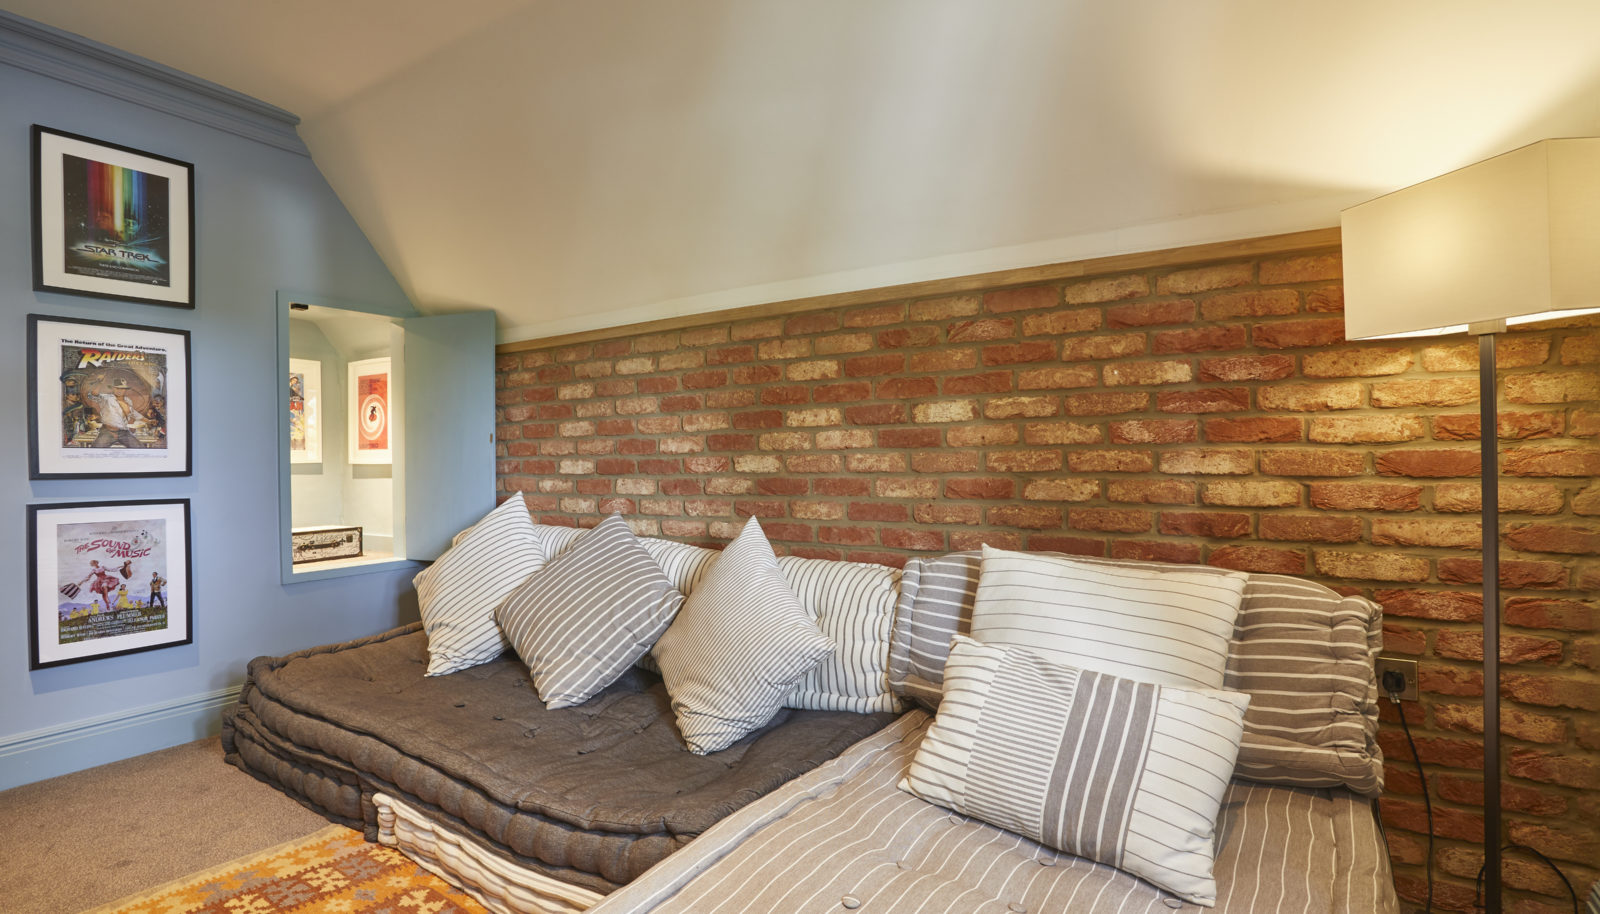 Coach house room with floor cushions seating area brick wall and blue walls with art